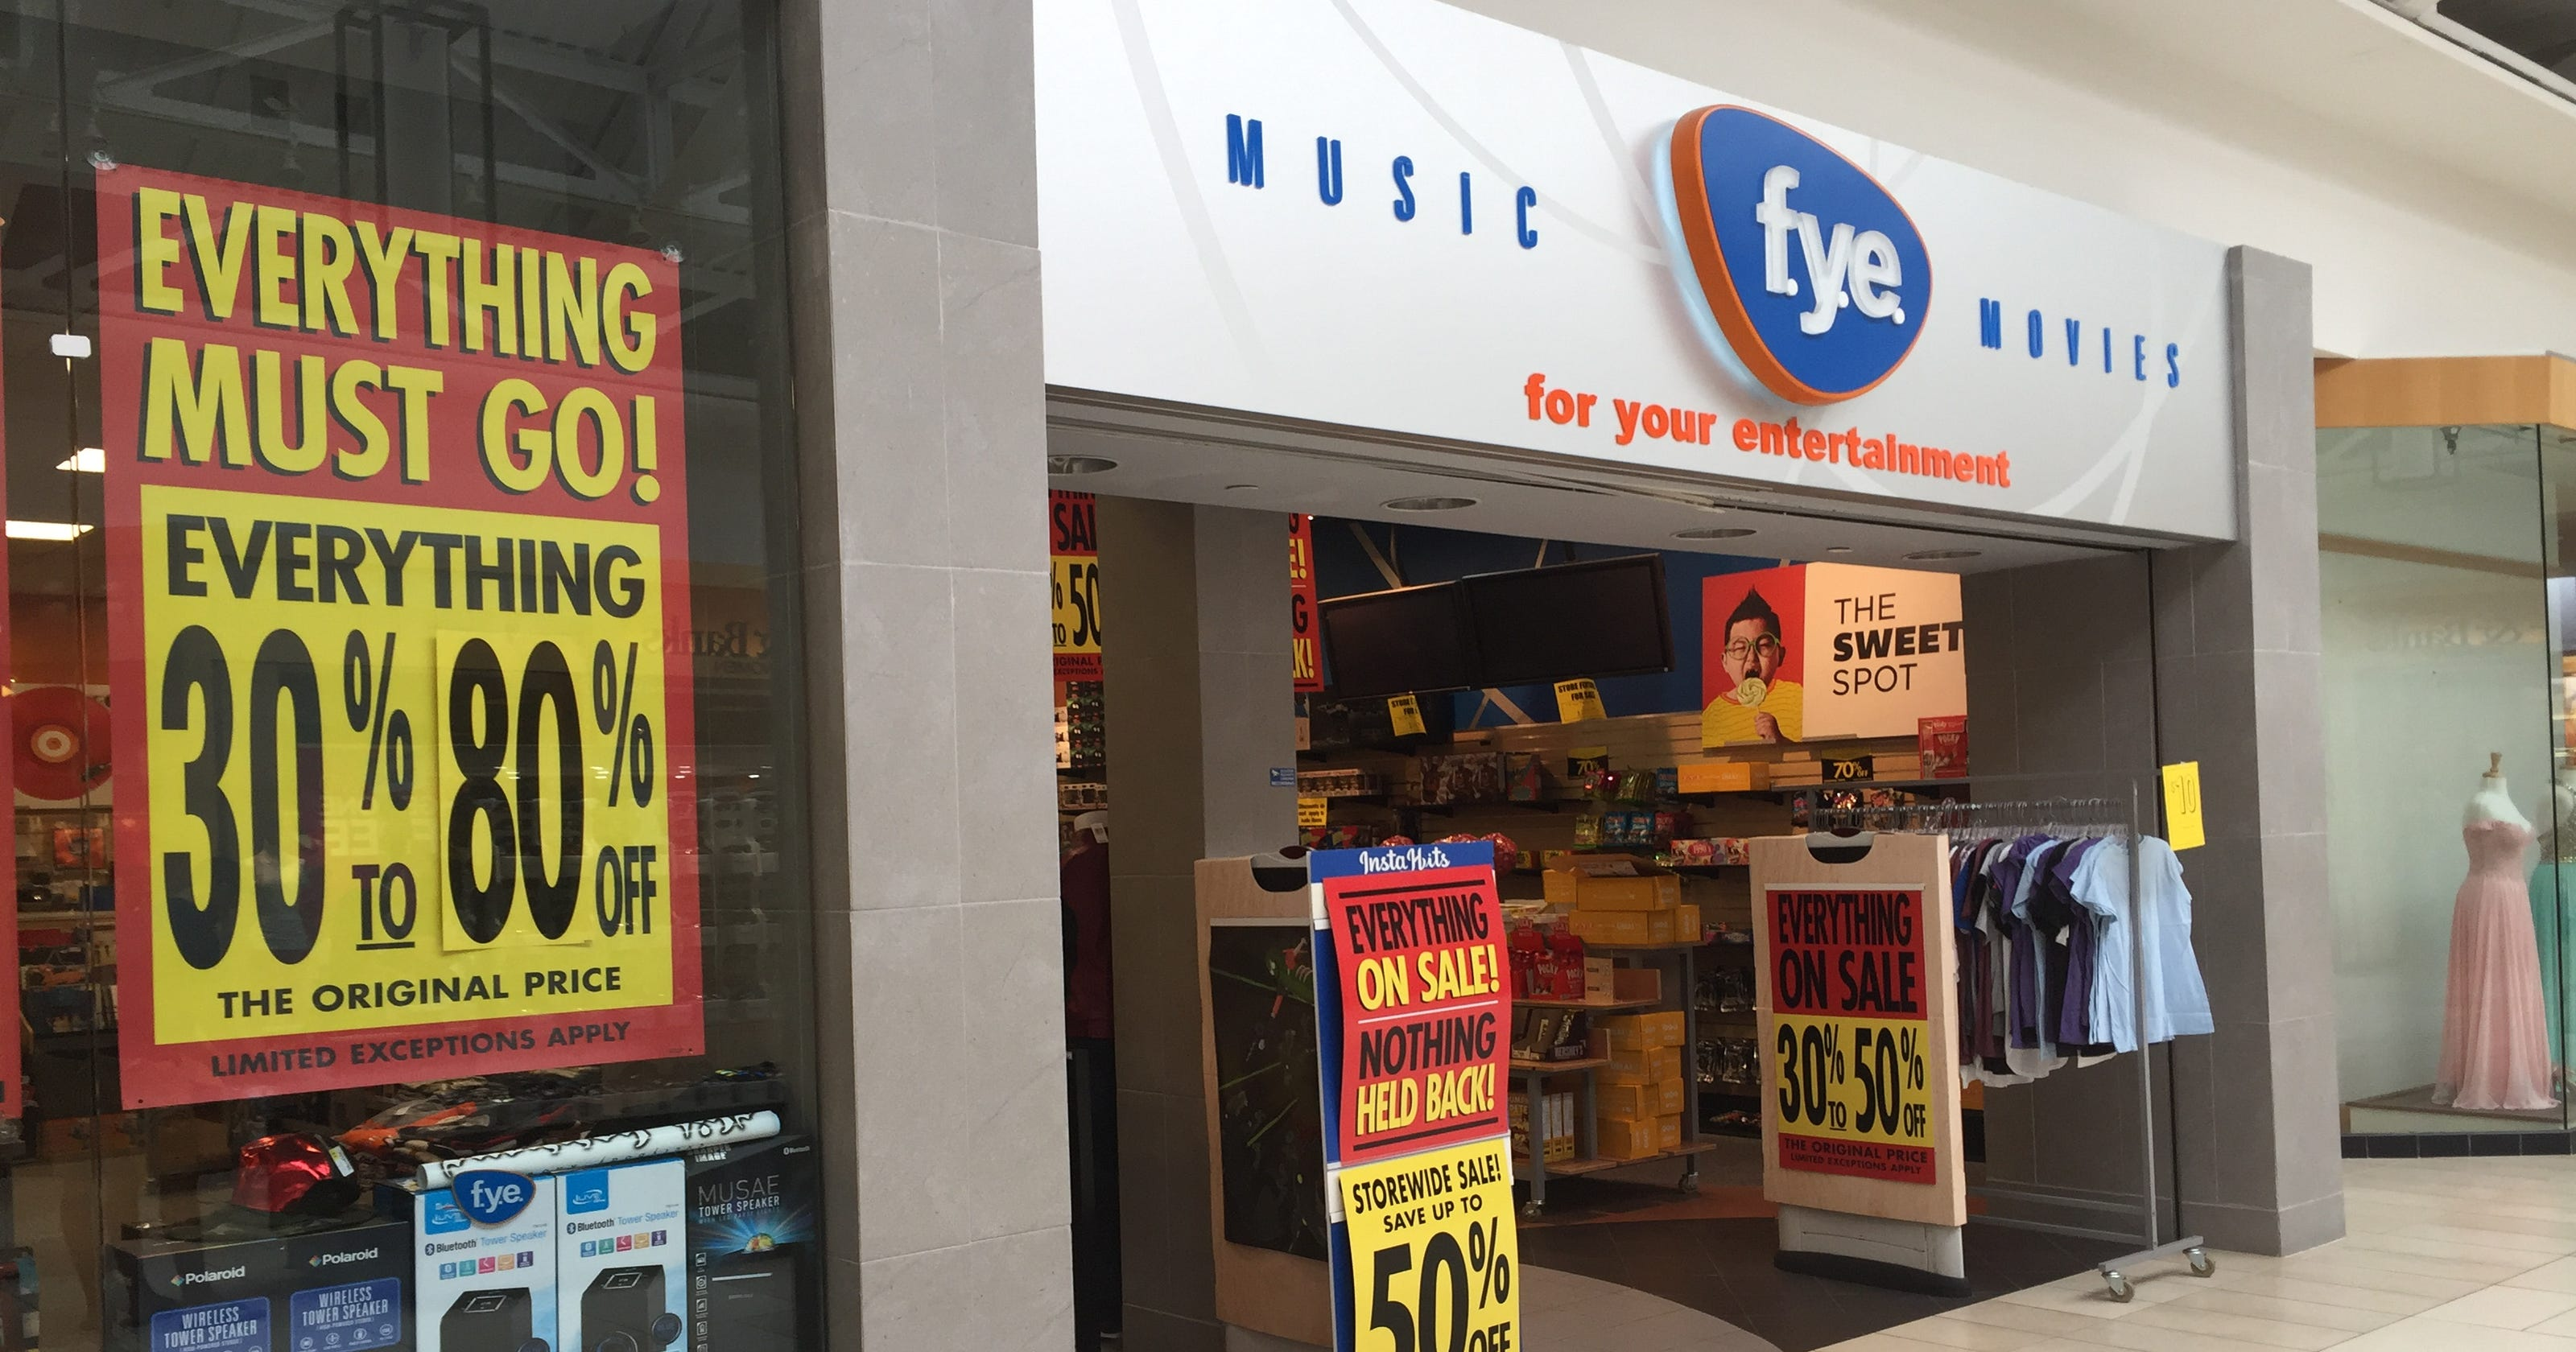 fg music store at River Valley Mall to close